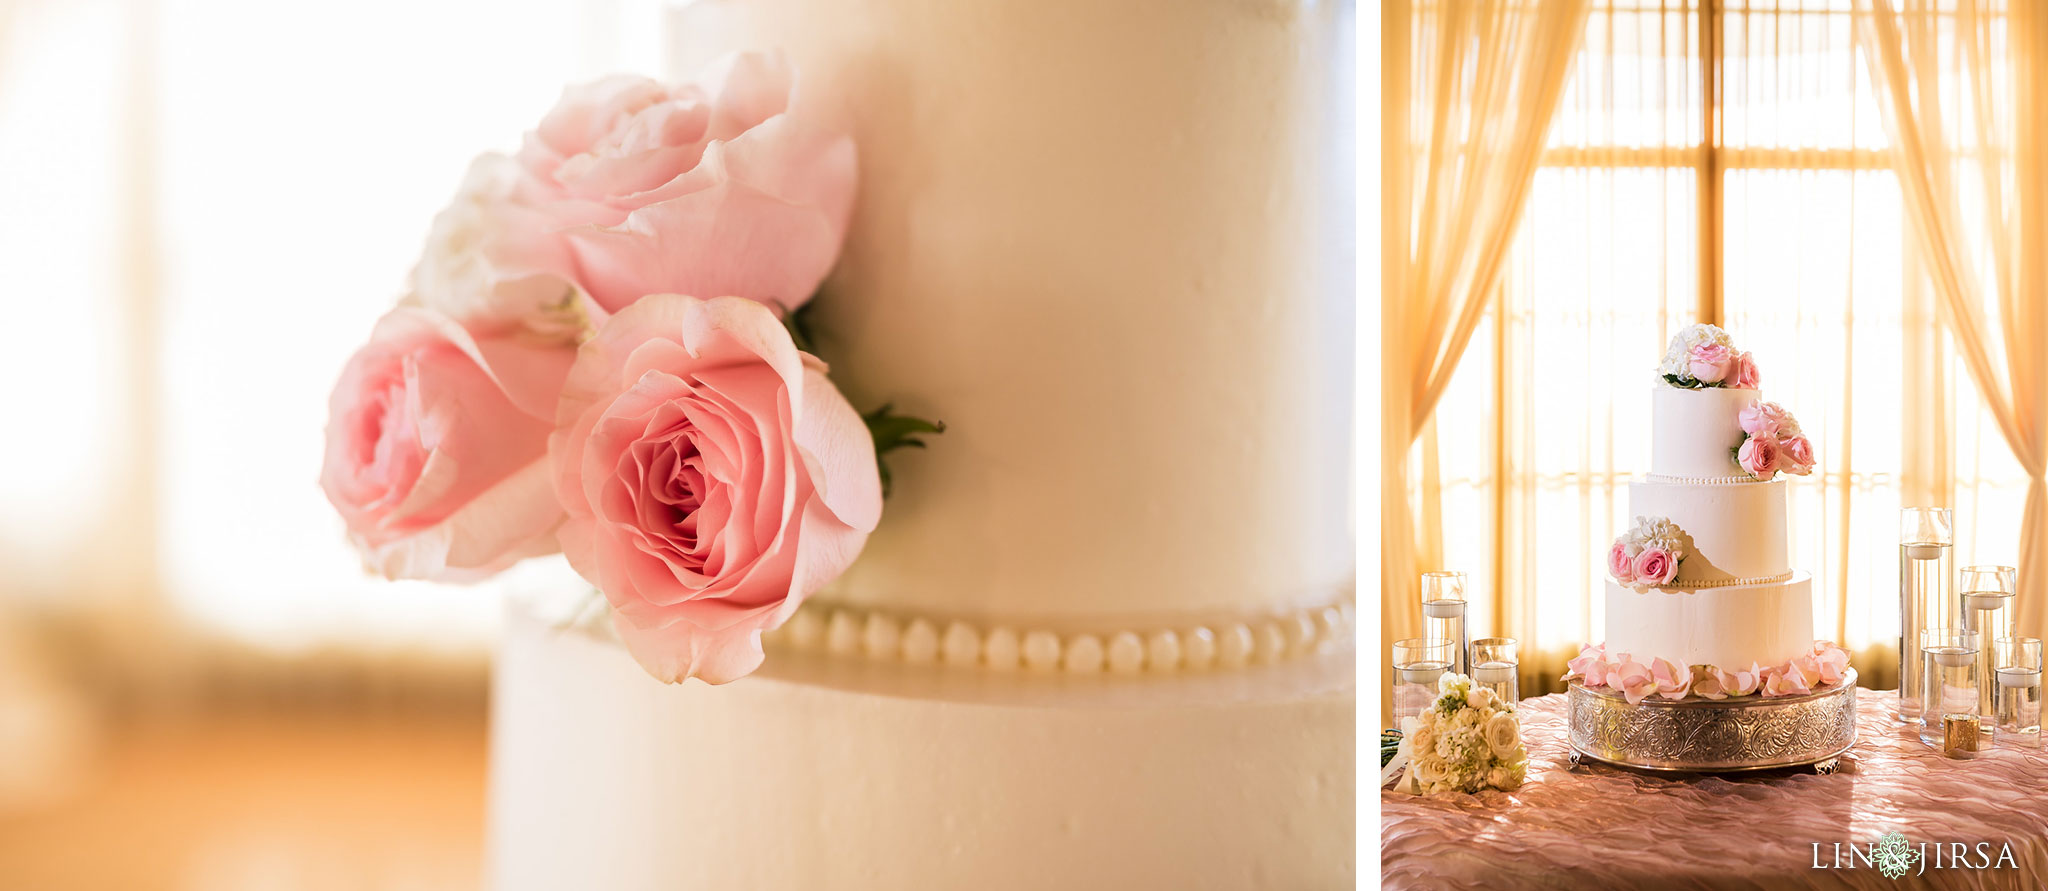 32 pelican hill resort newport coast wedding cake photography